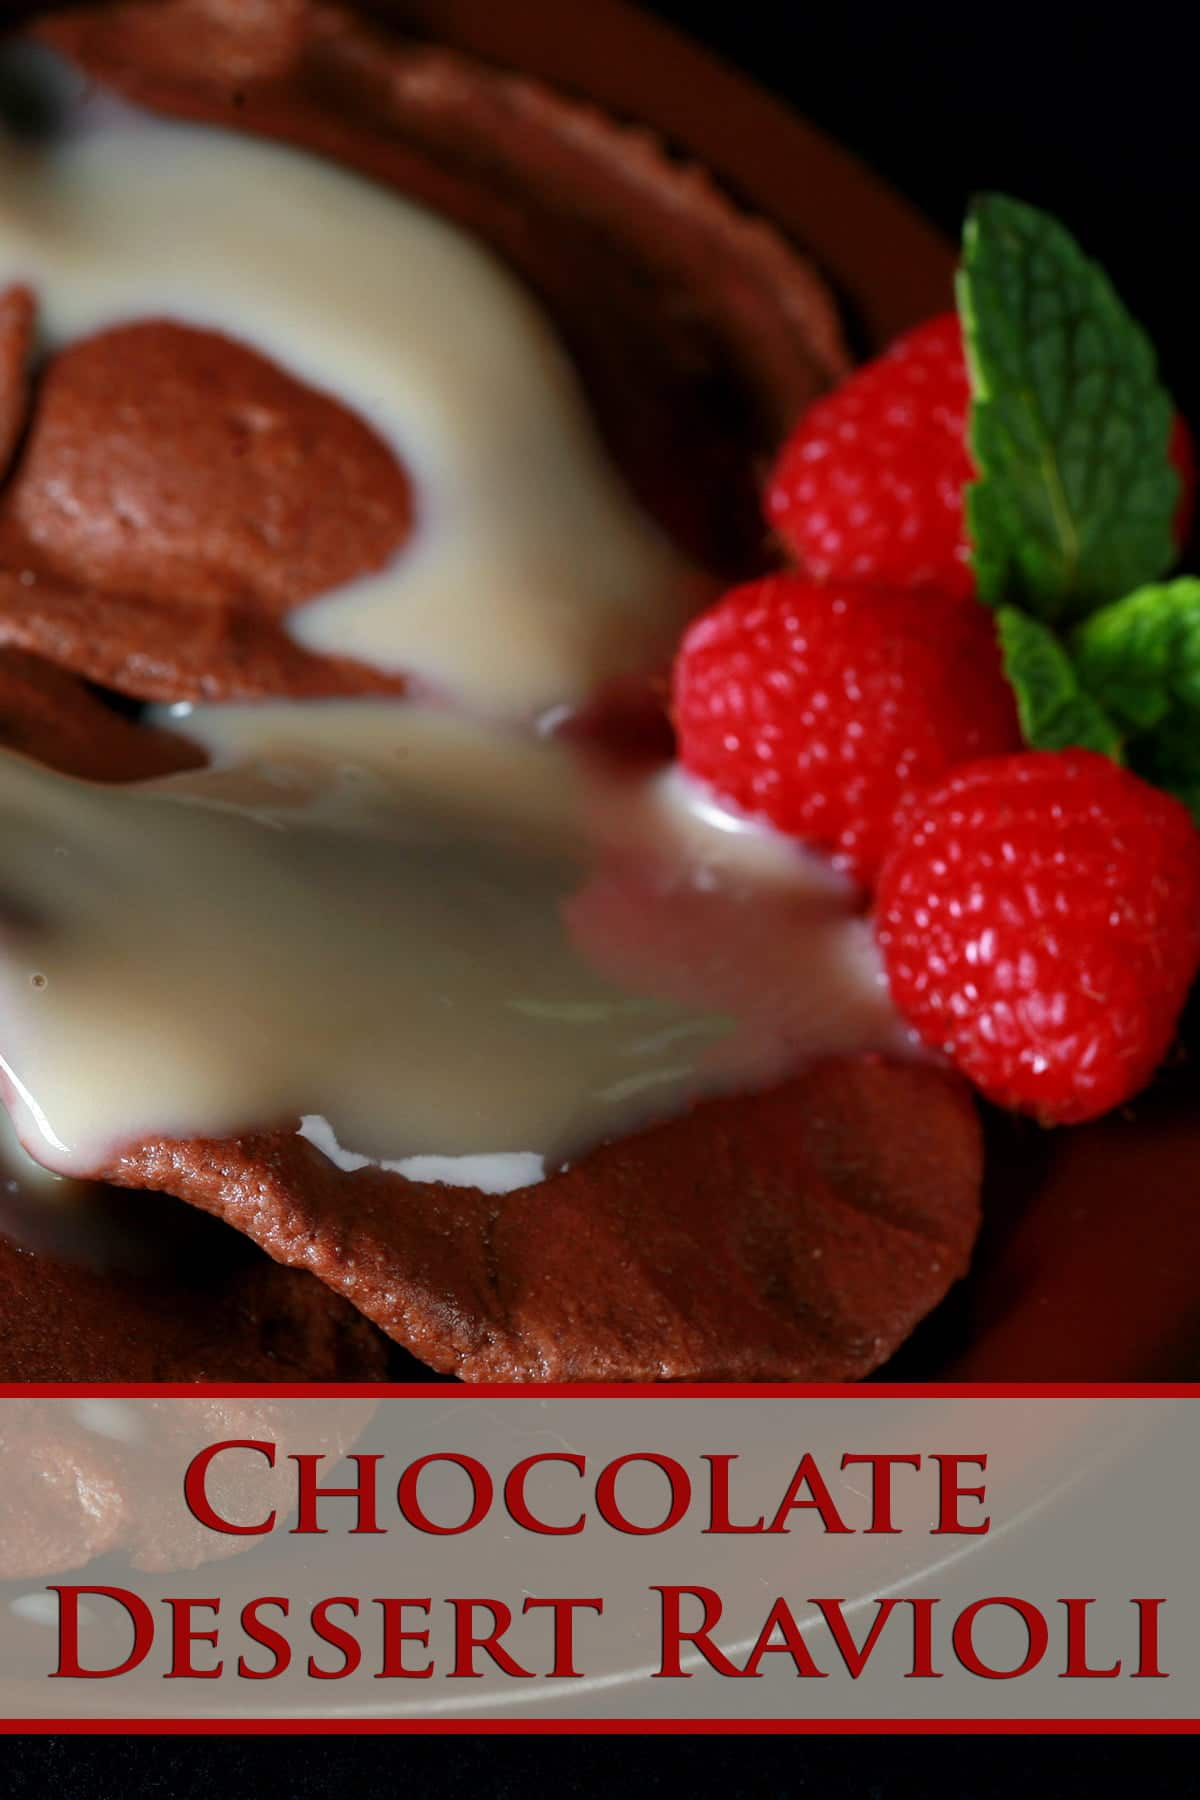 Chocolate Ravioli, arranged on a dark plate. It is drizzled with a cream sauce, and raspberries and a mint spring.